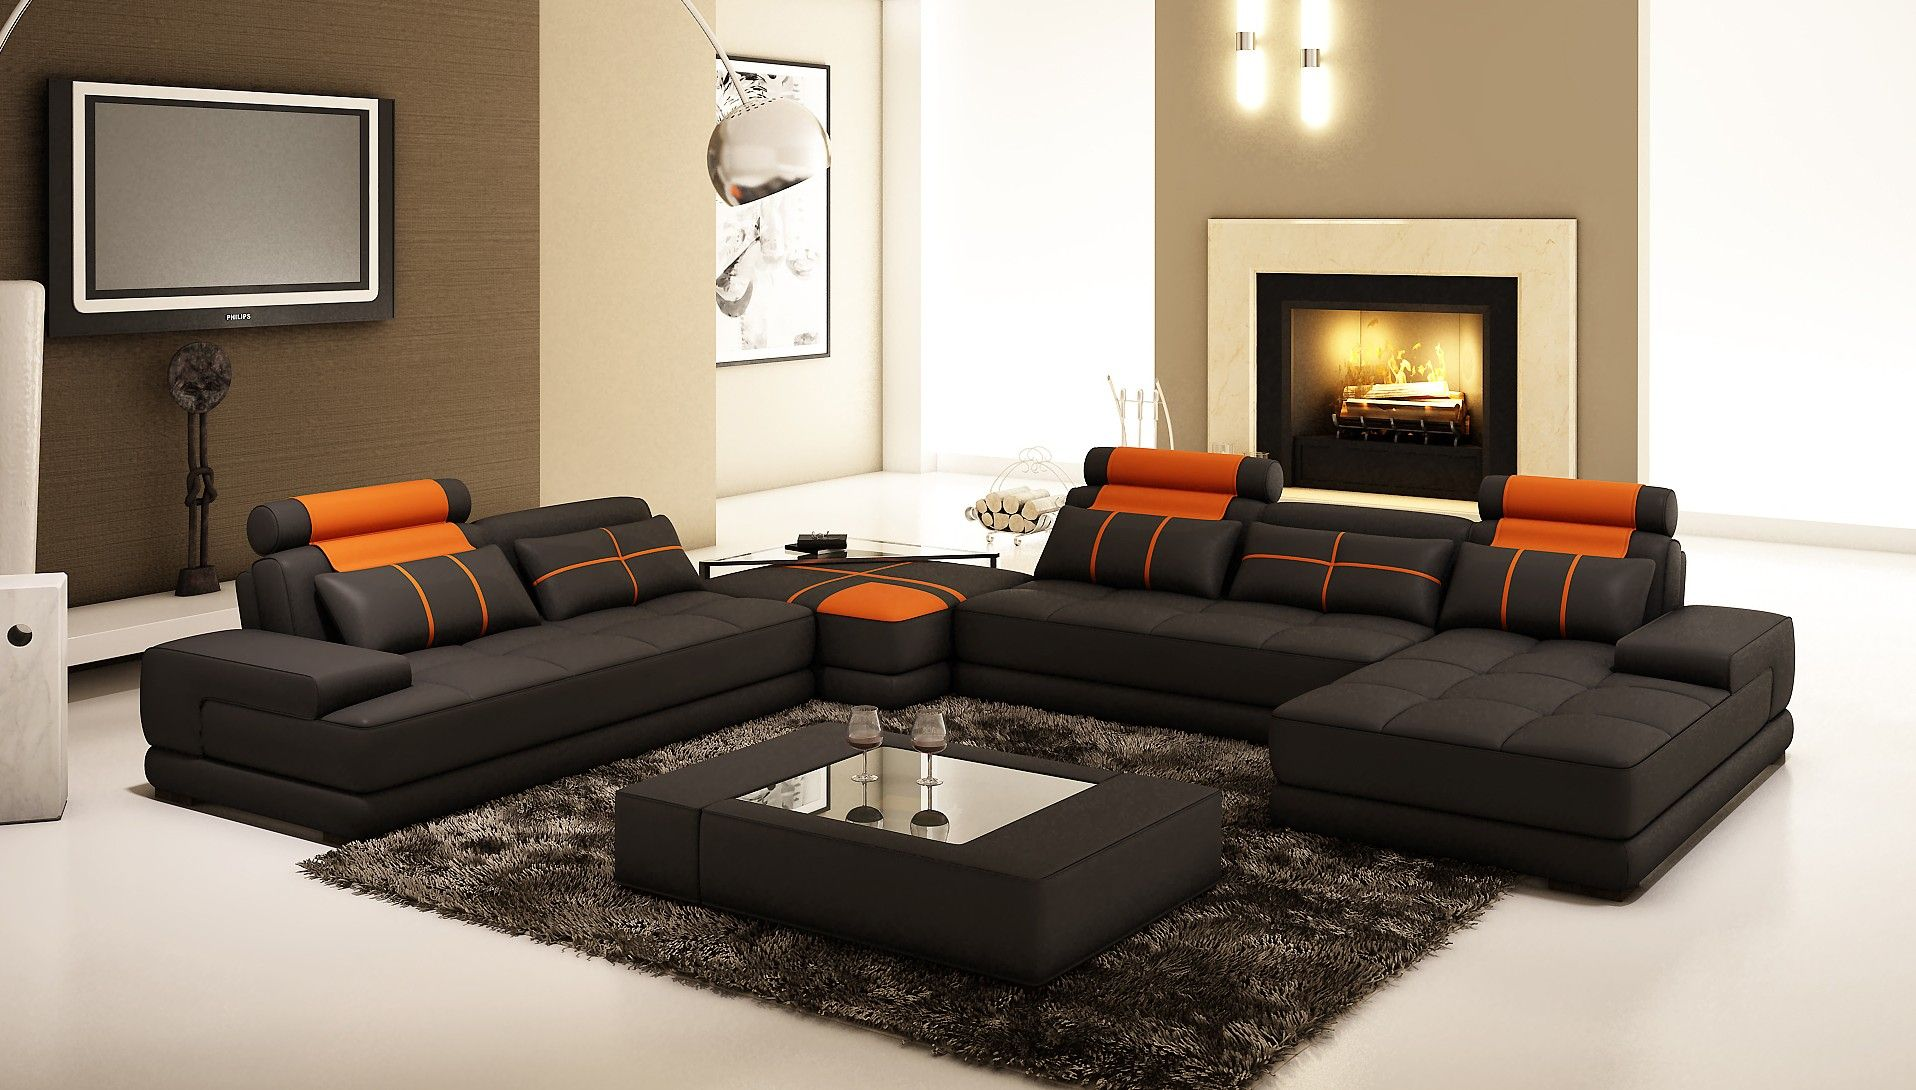 Living Room Design With Black Leather Sofa Amazing Ev5004  Диваны   Pinterest  Orange Leather Sofas Design Inspiration